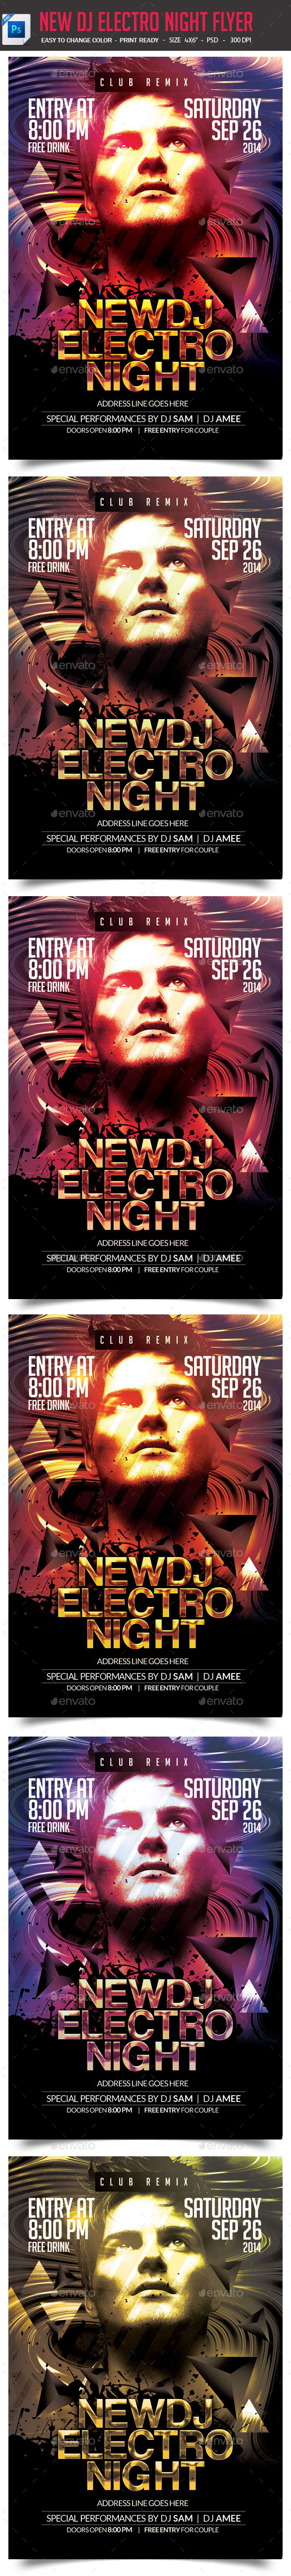 GraphicRiver Guest DJ Party Flyer 9229802